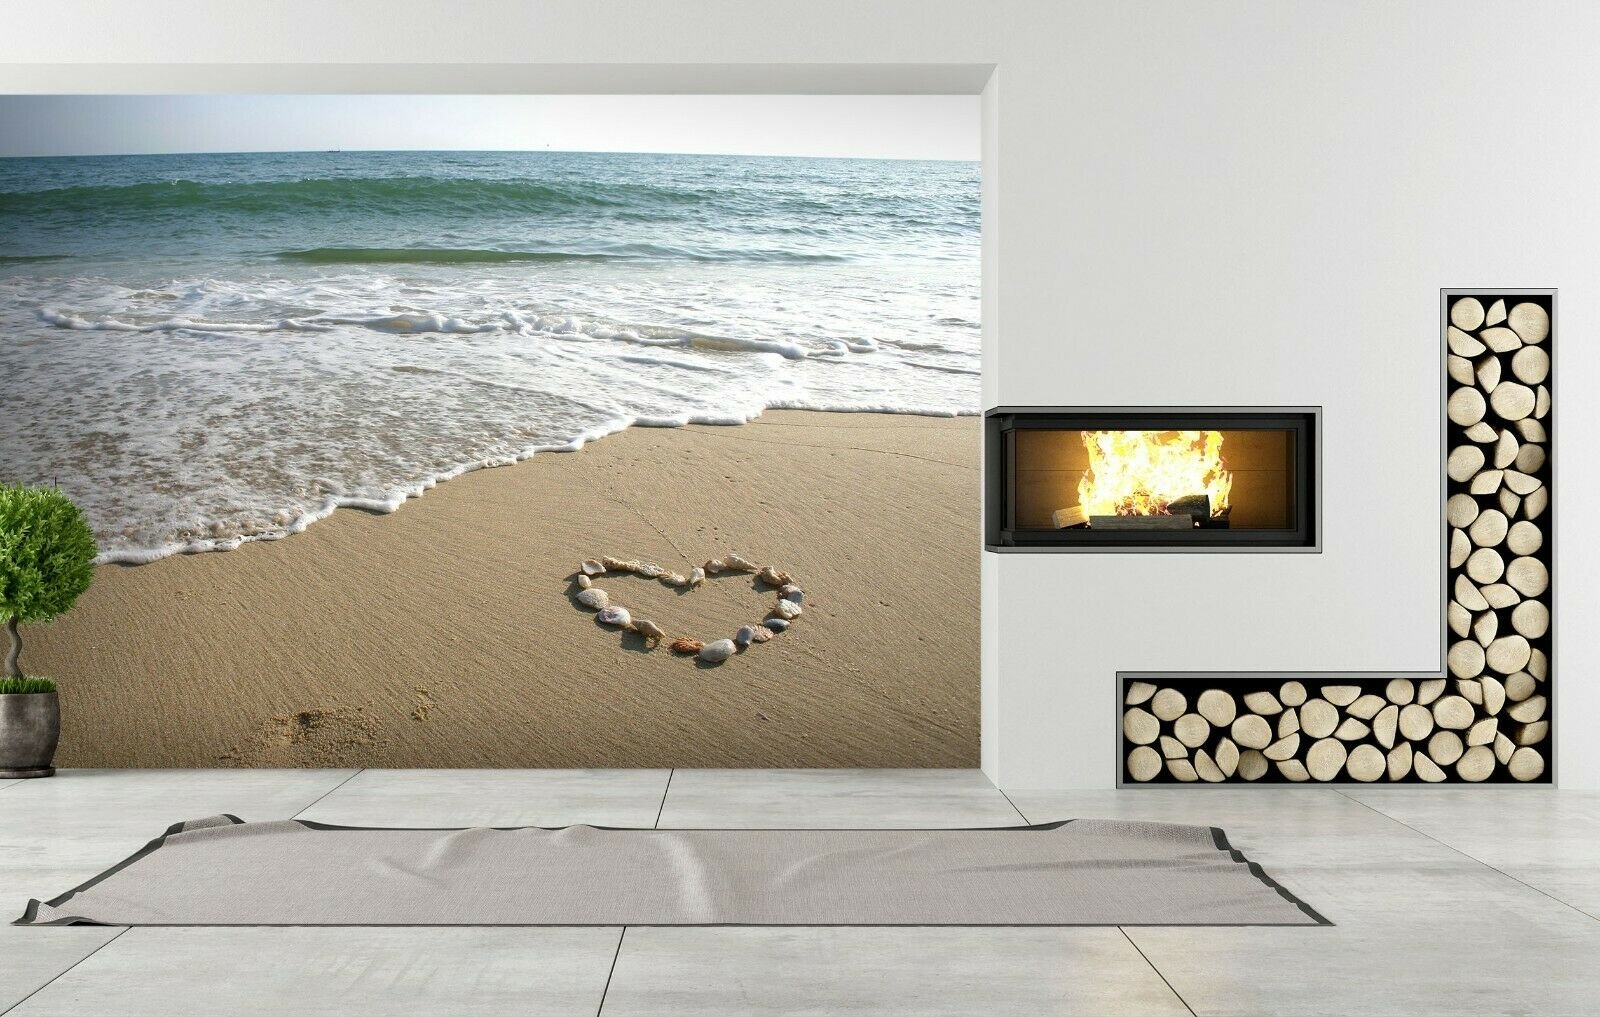 3D Lounge Heart Shaped R370 Wallpaper Wall Mural Self-adhesive Commerce Amy